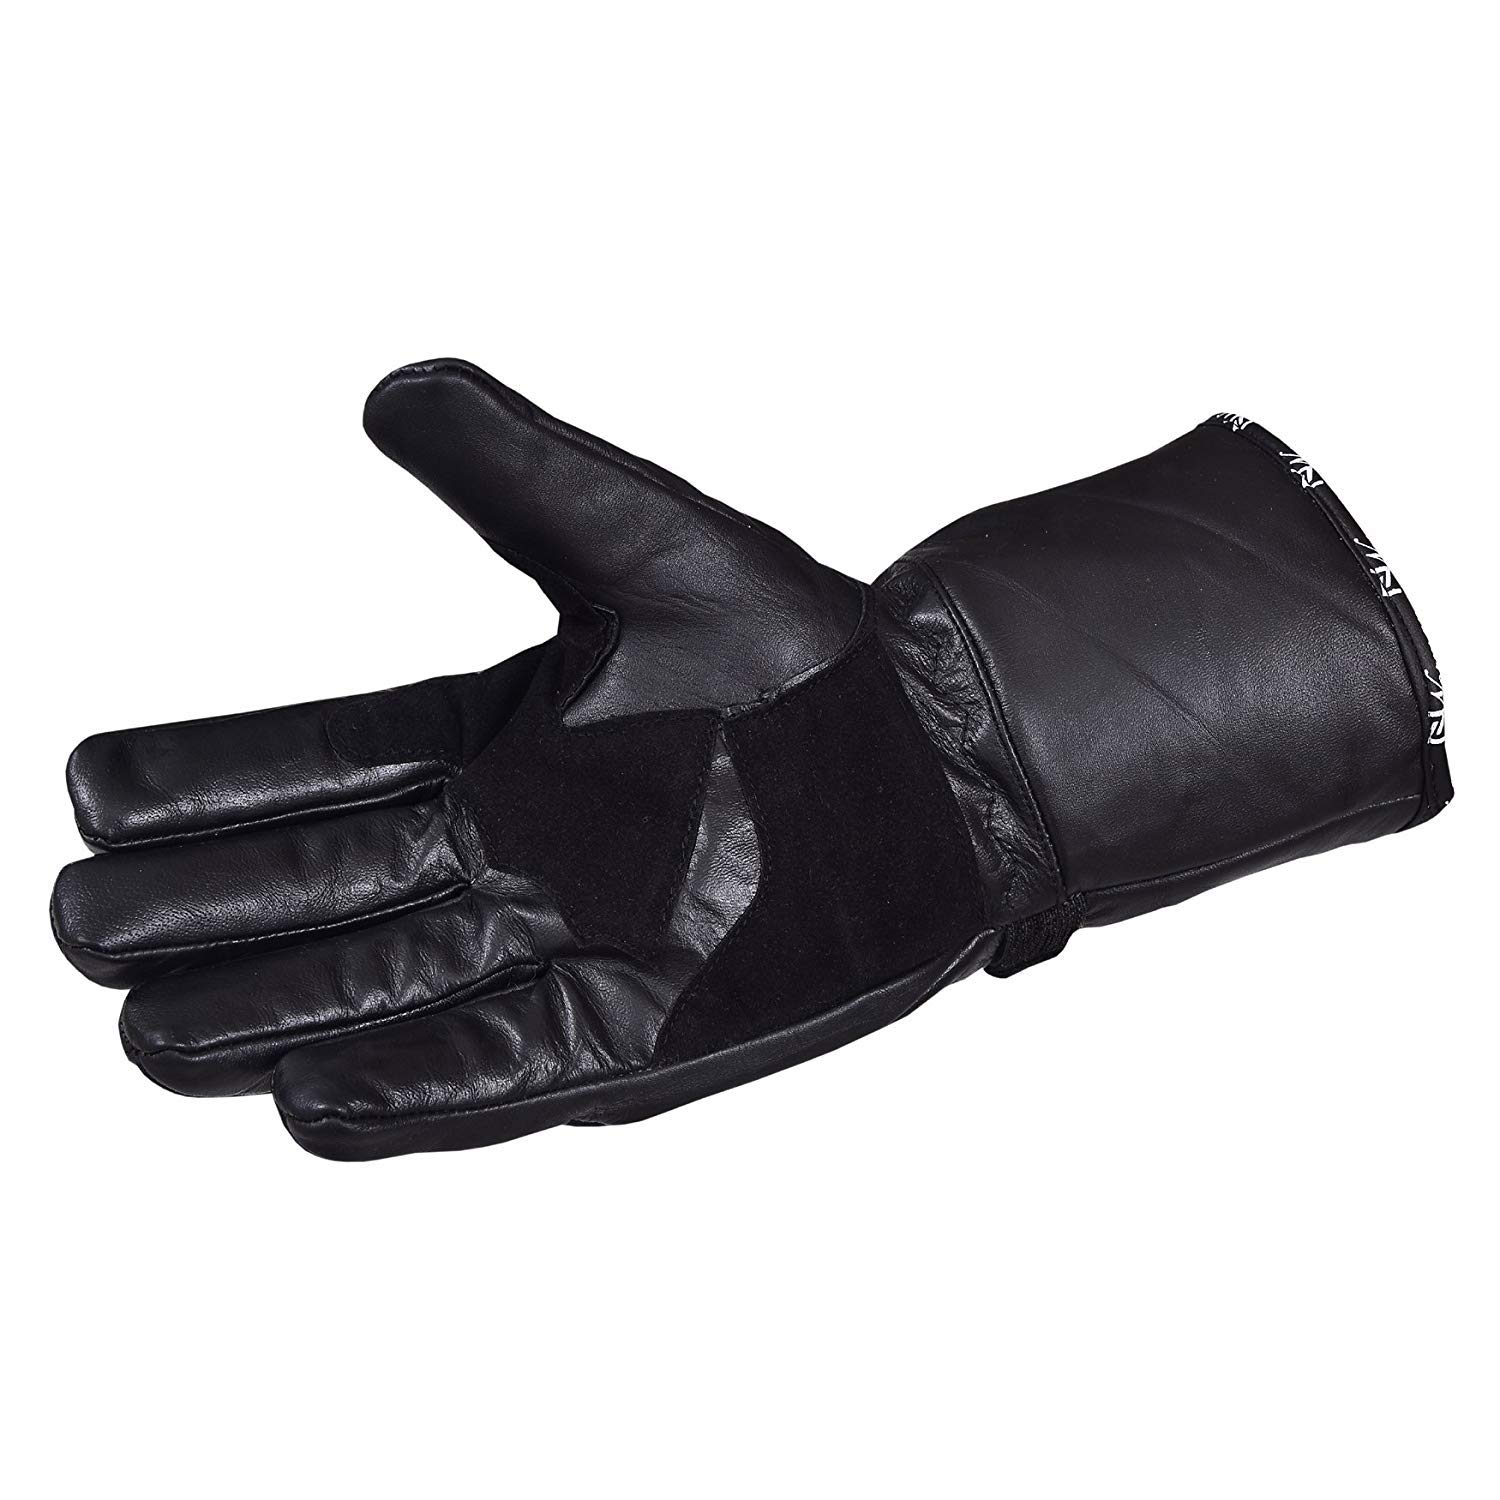 Leather Reflective Thermal Motorbike Gloves Thermal Waterproof Motorcycle Glove